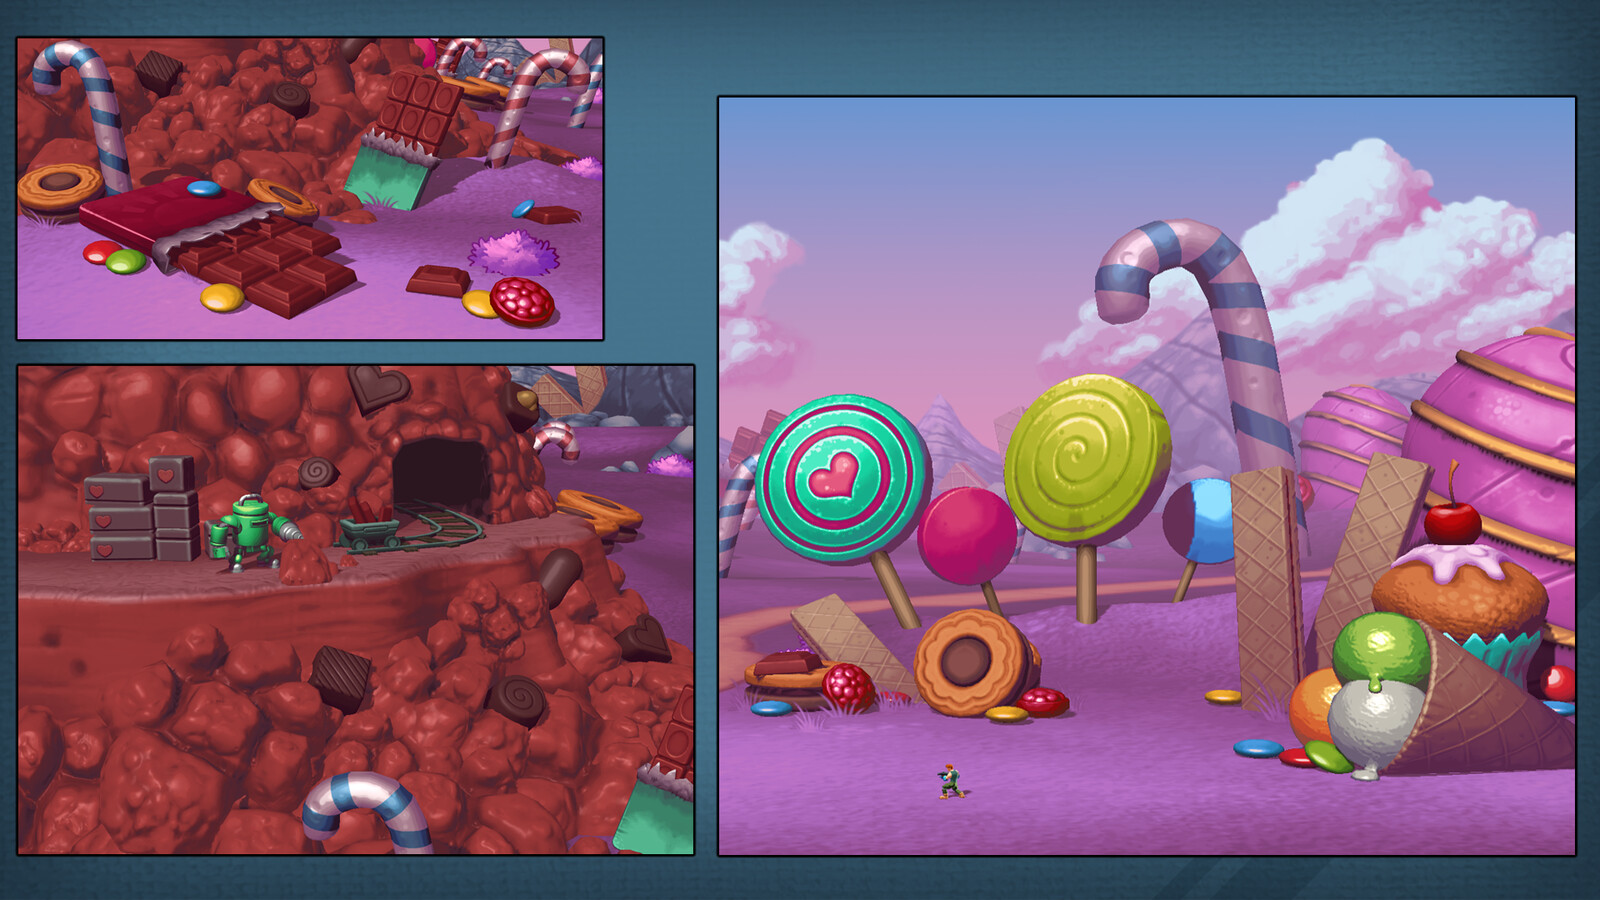 Every game should feature a Candy level